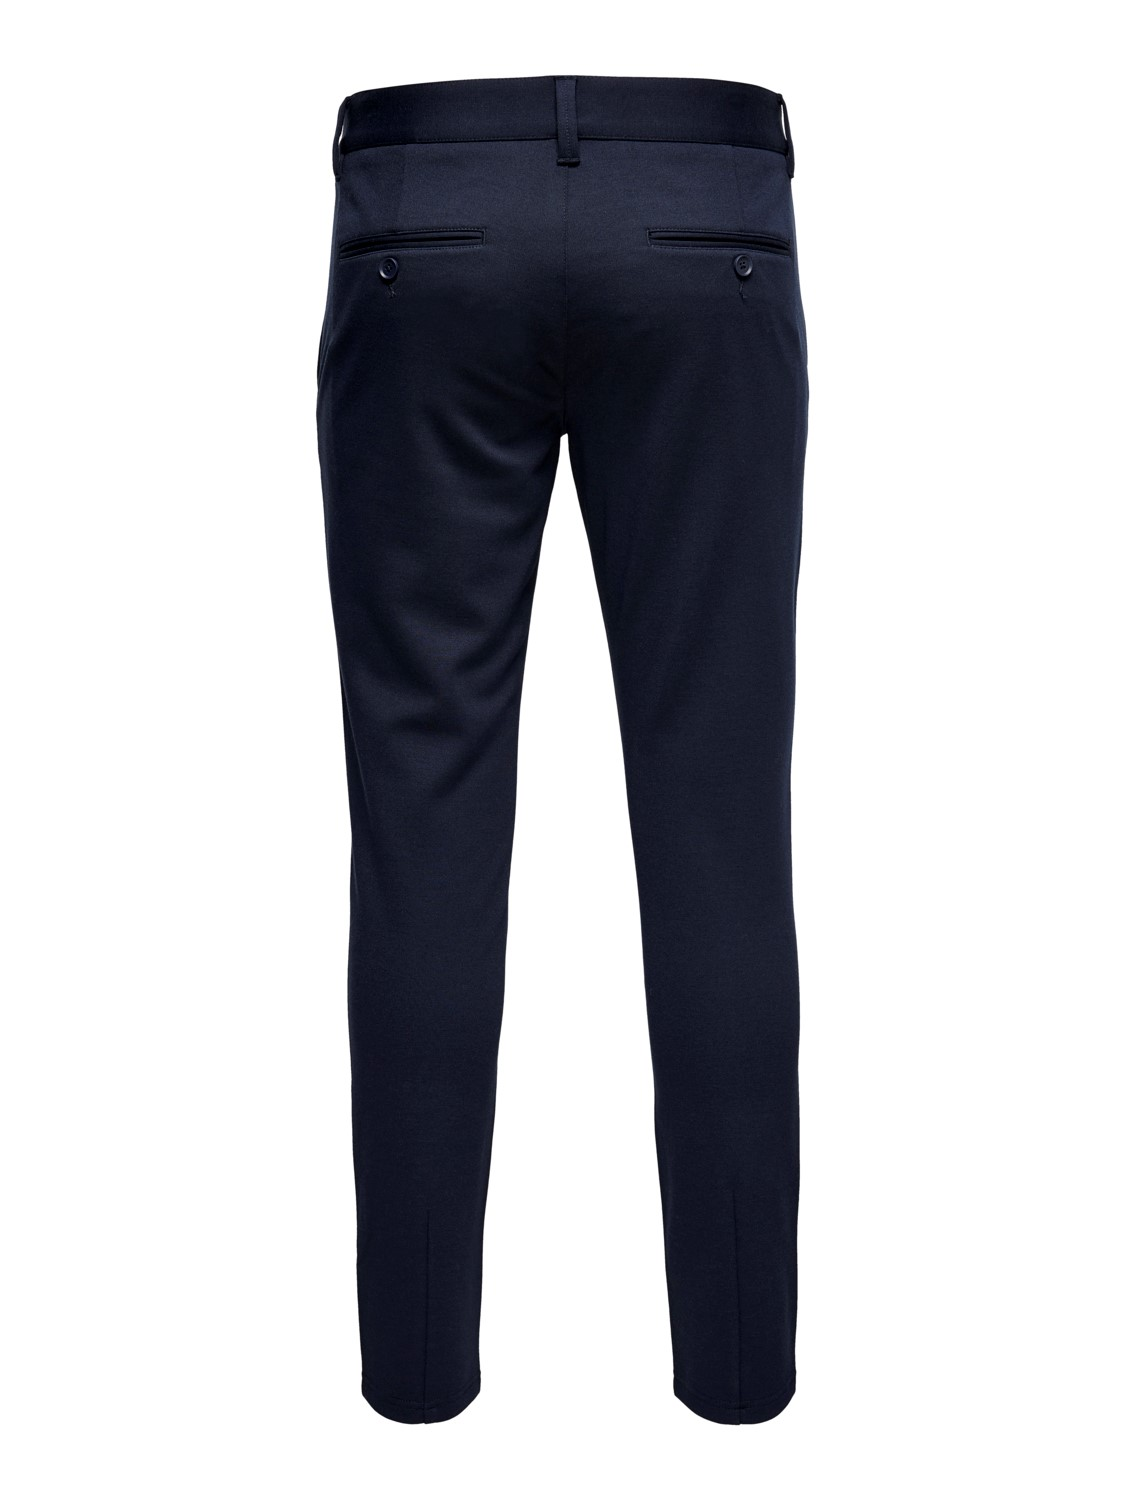 ONLY & SONS - Mark Pants Night Sky | Gate 36 Hobro | Herretøj